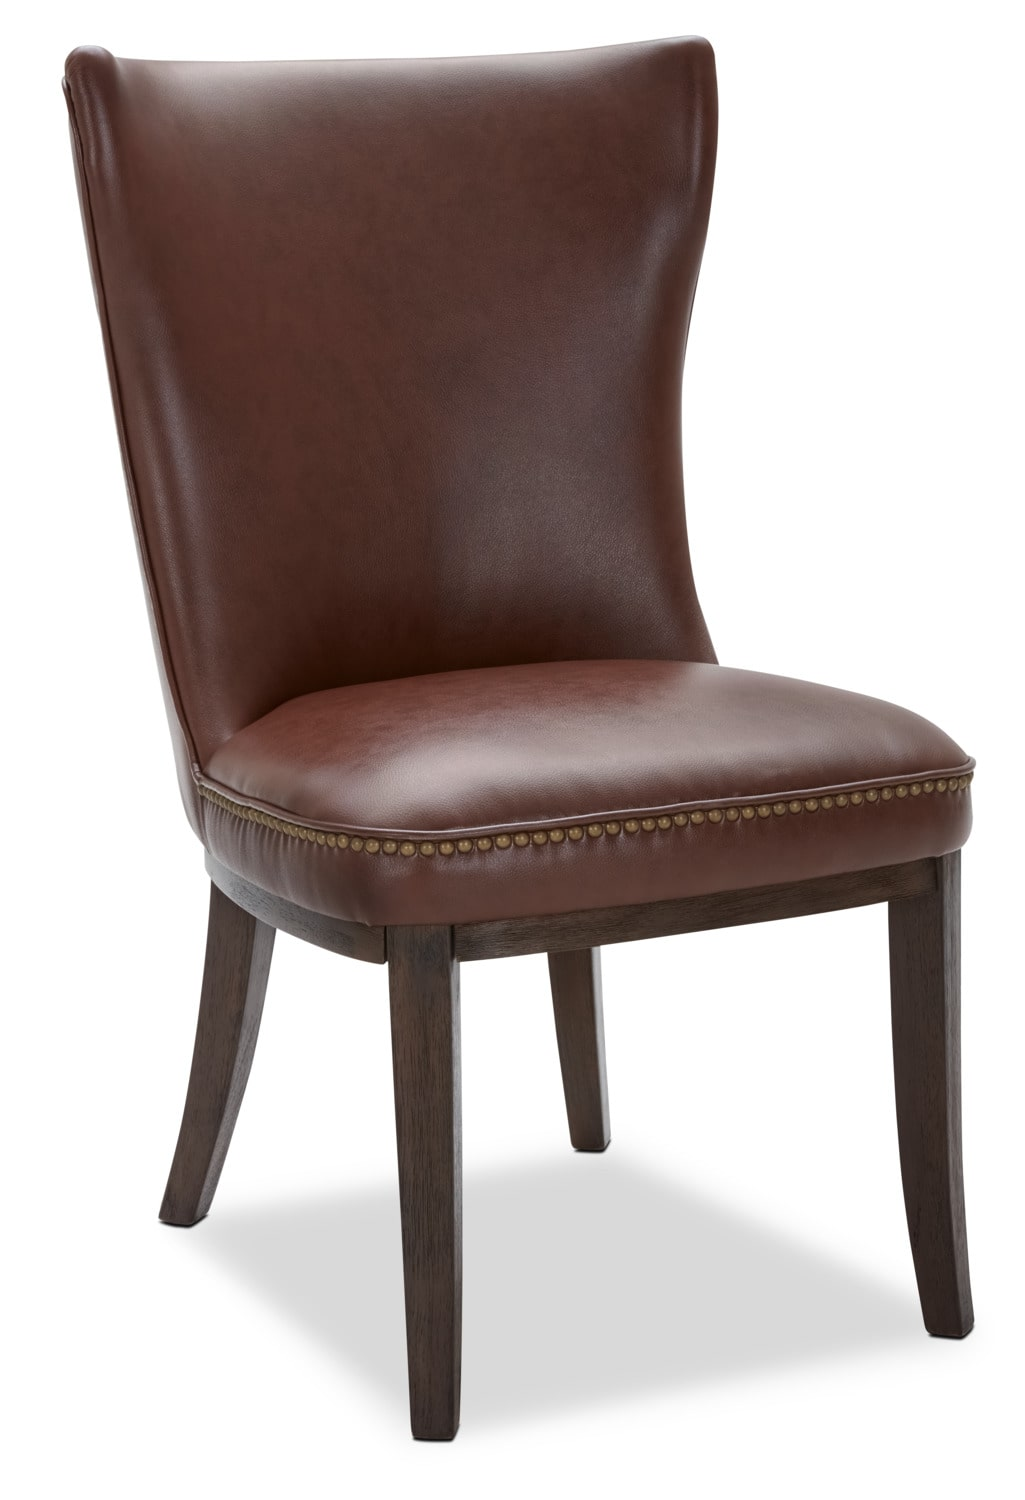 Ava Dining Chair – Cognac